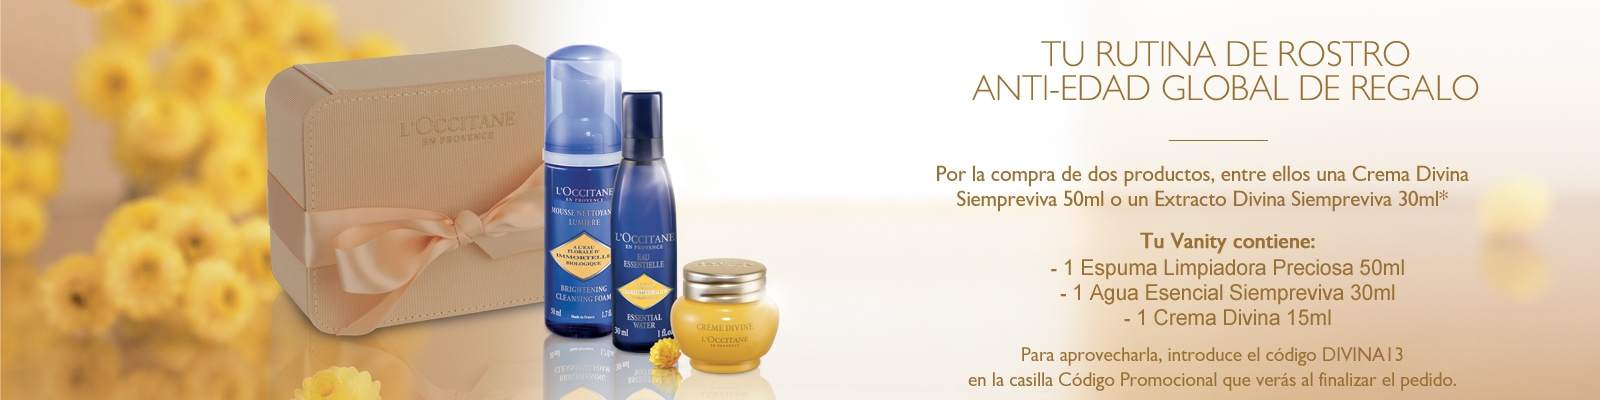 Rutina de Rostro Anti-Edad Global - L'Occitane en Provence